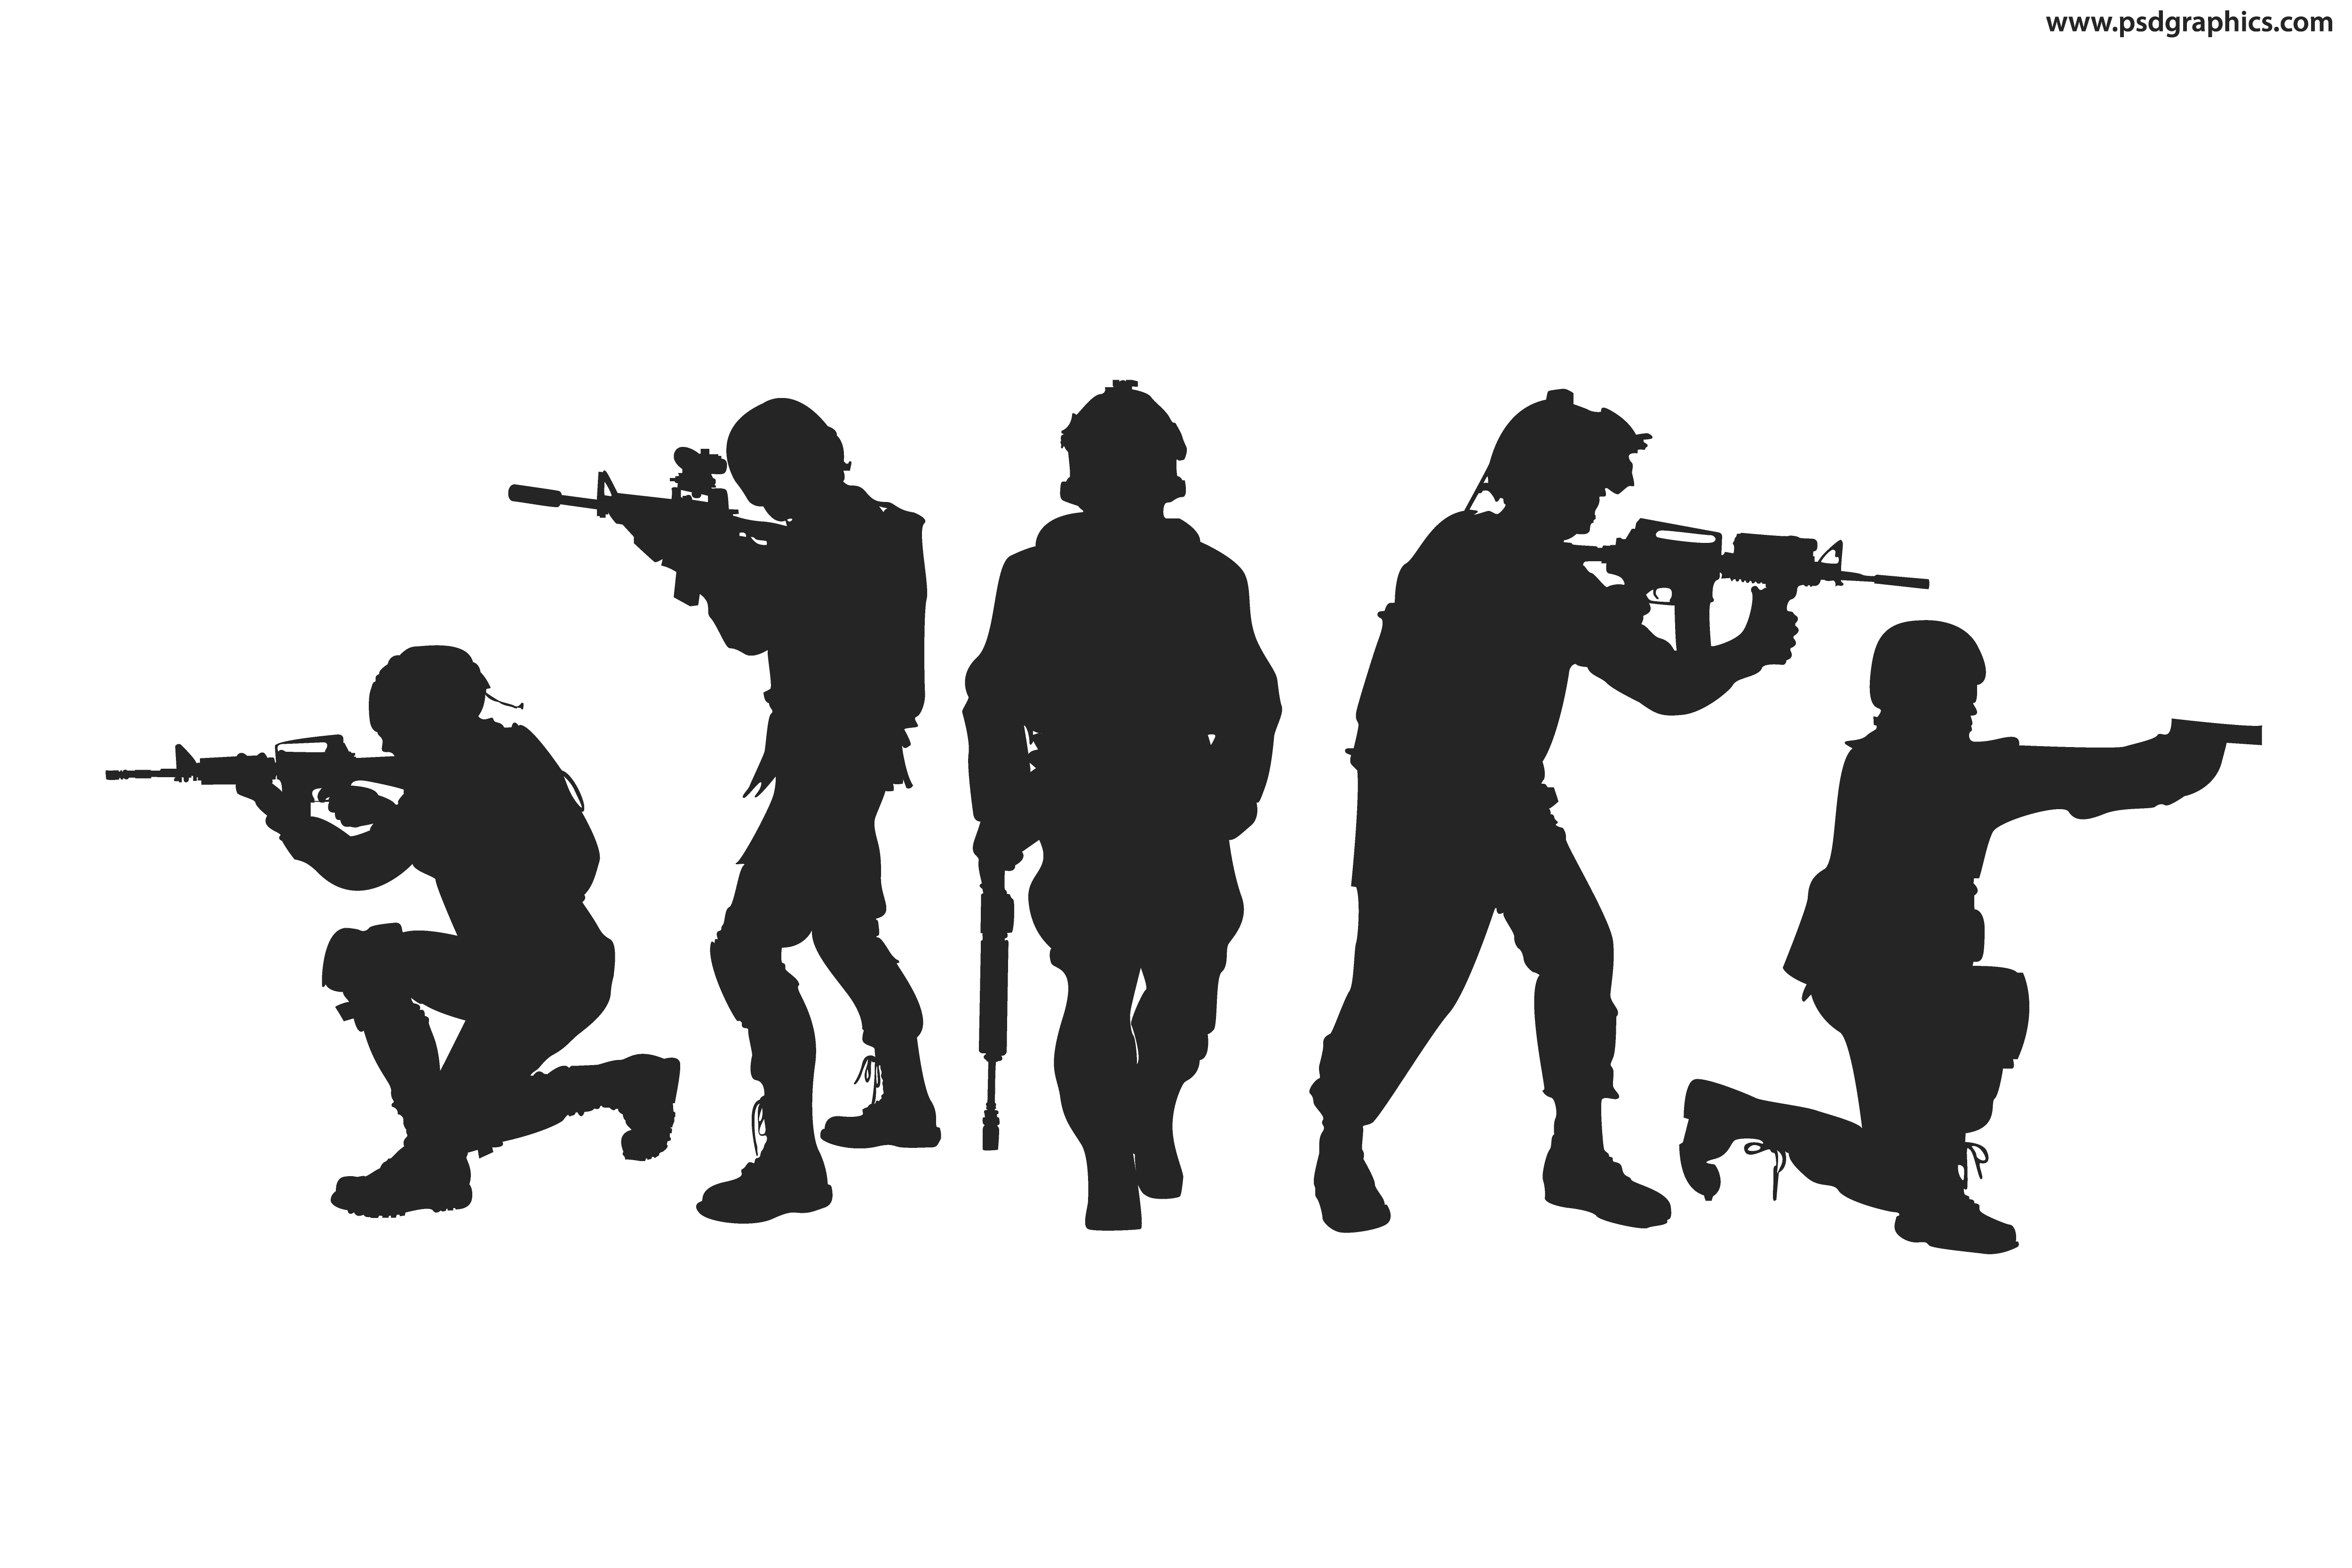 Soldiers silhouettes vector | PSDGraphics - Soldier Silhouette Vector